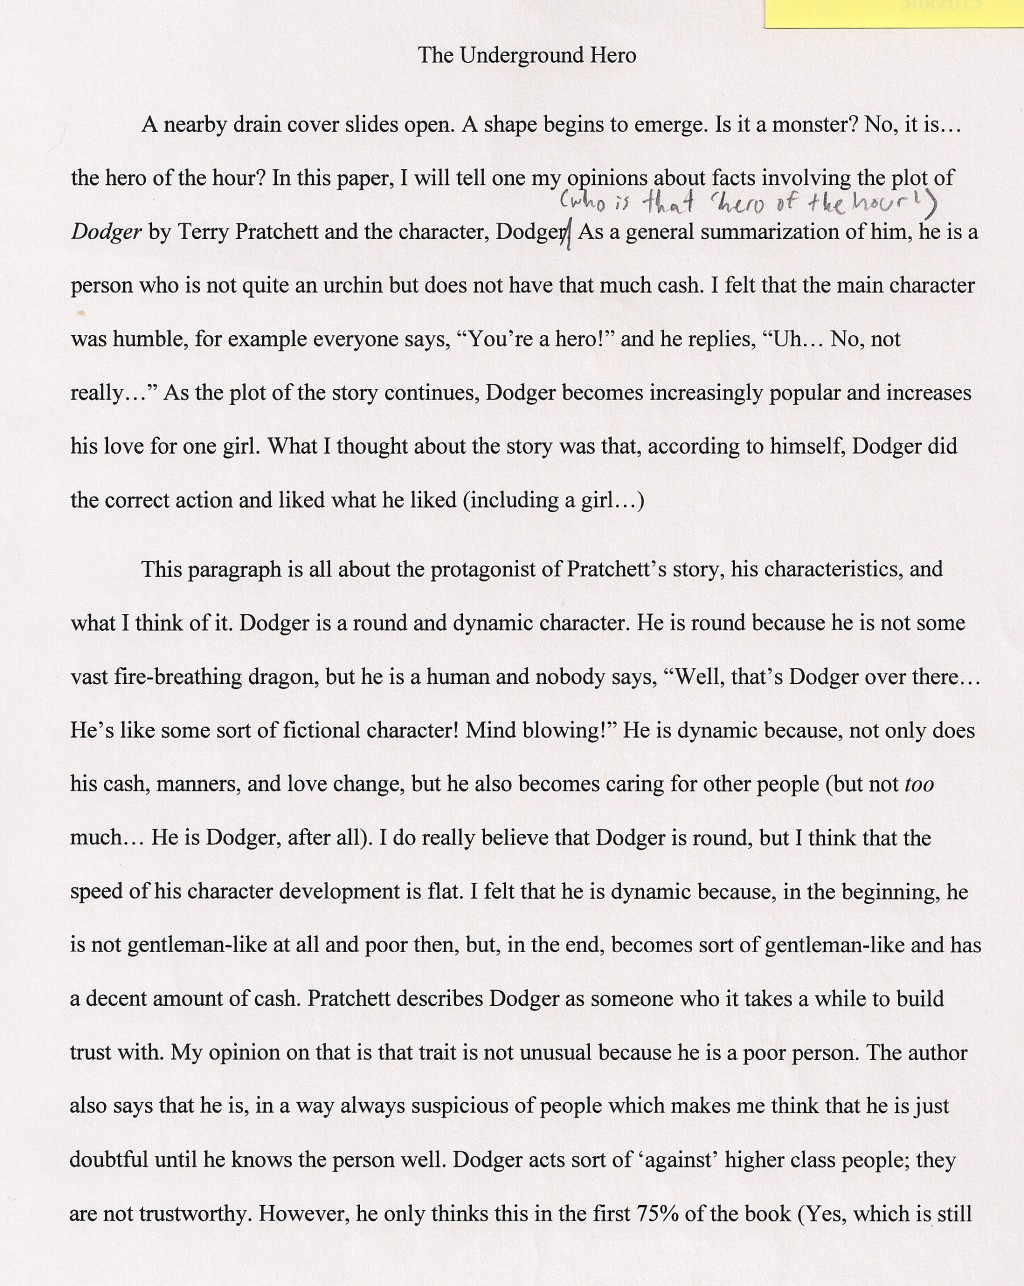 007 The Underground Hero Essay Example My Real Fascinating Life Unsung In Secret As A Large